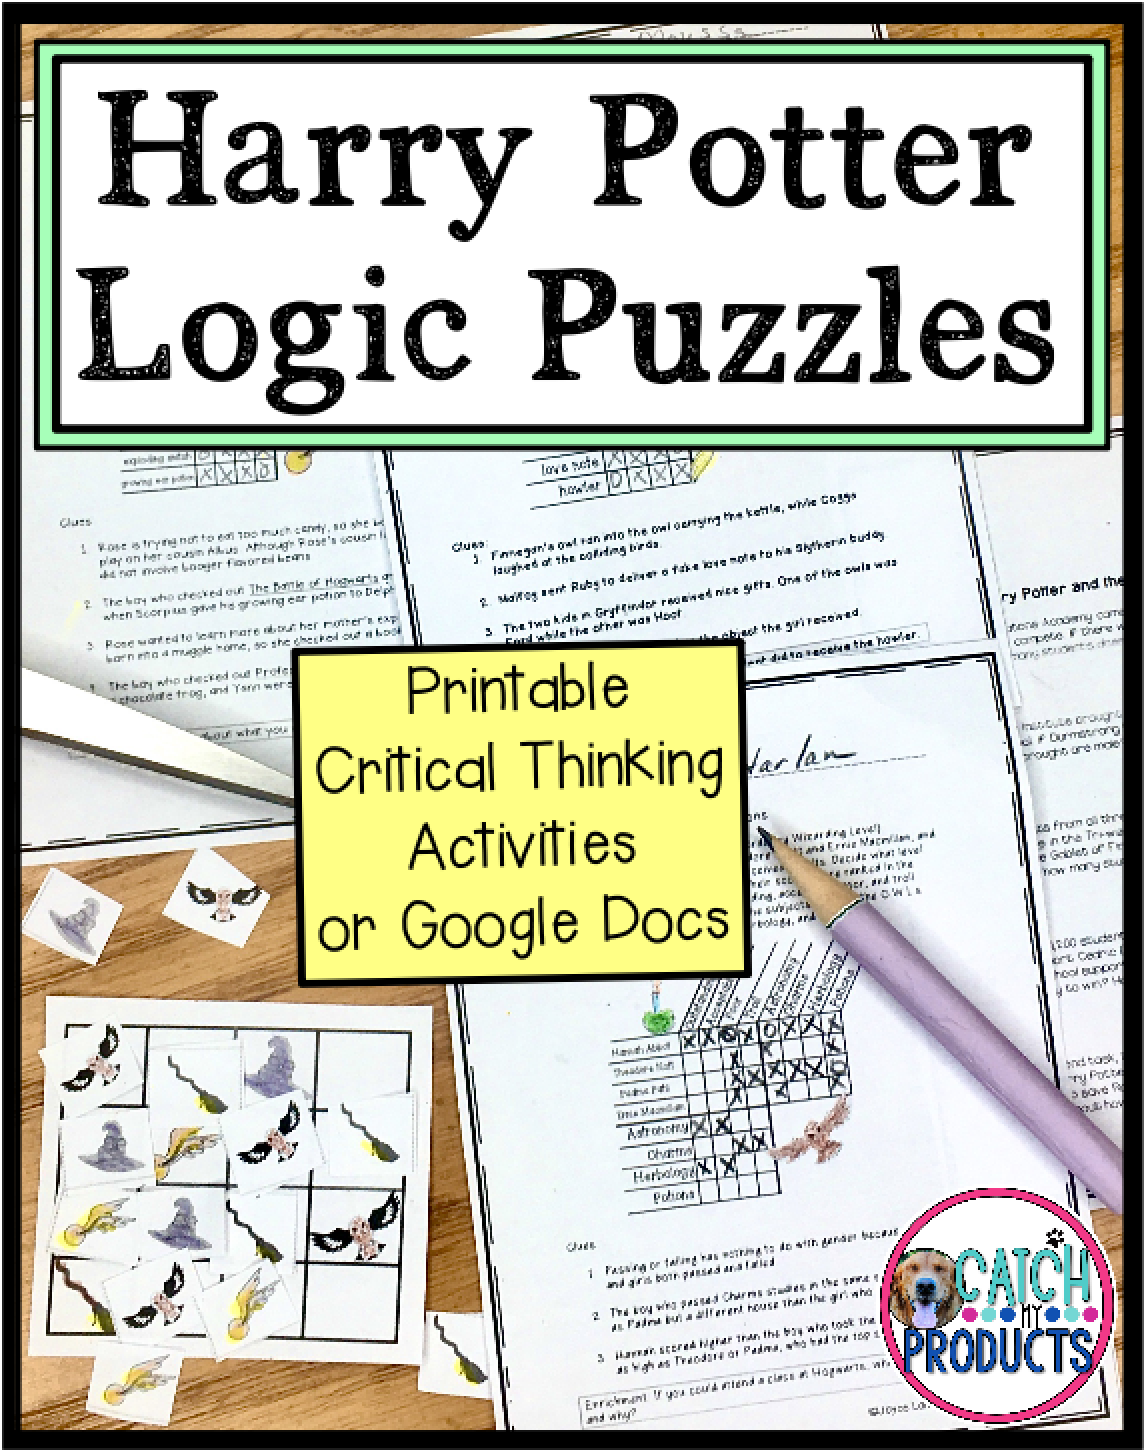 Harry Potter Logic Puzzles For Kids In